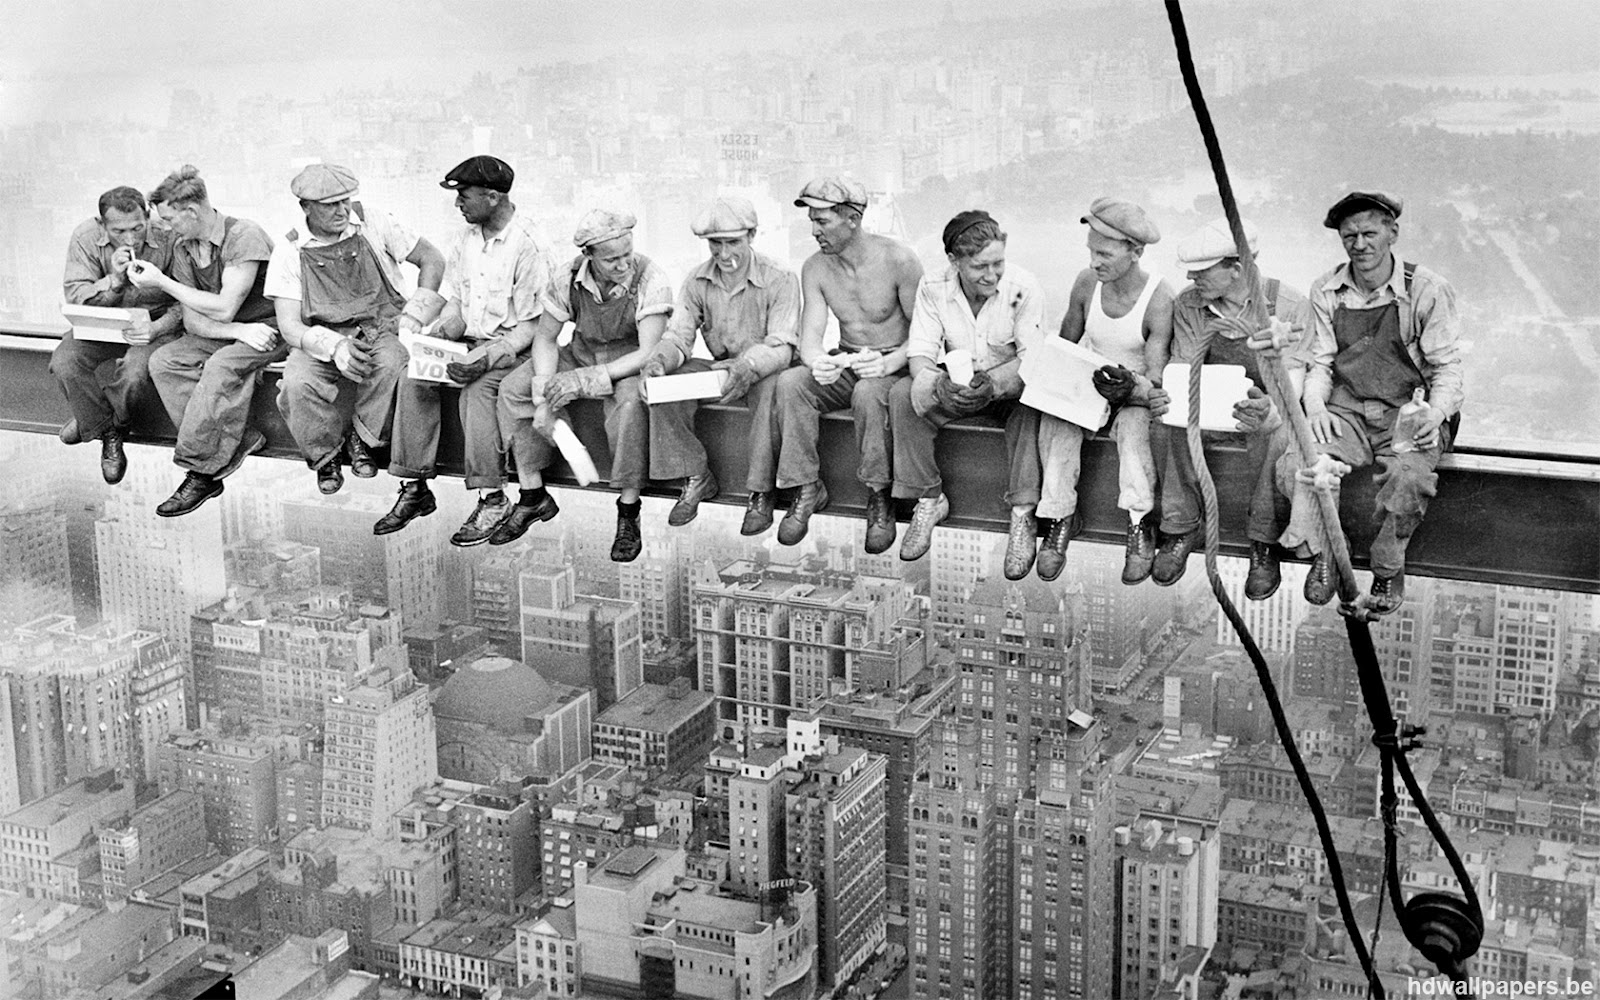 Construction - Charles C Ebbets, Lunchtime atop a Skyscraper